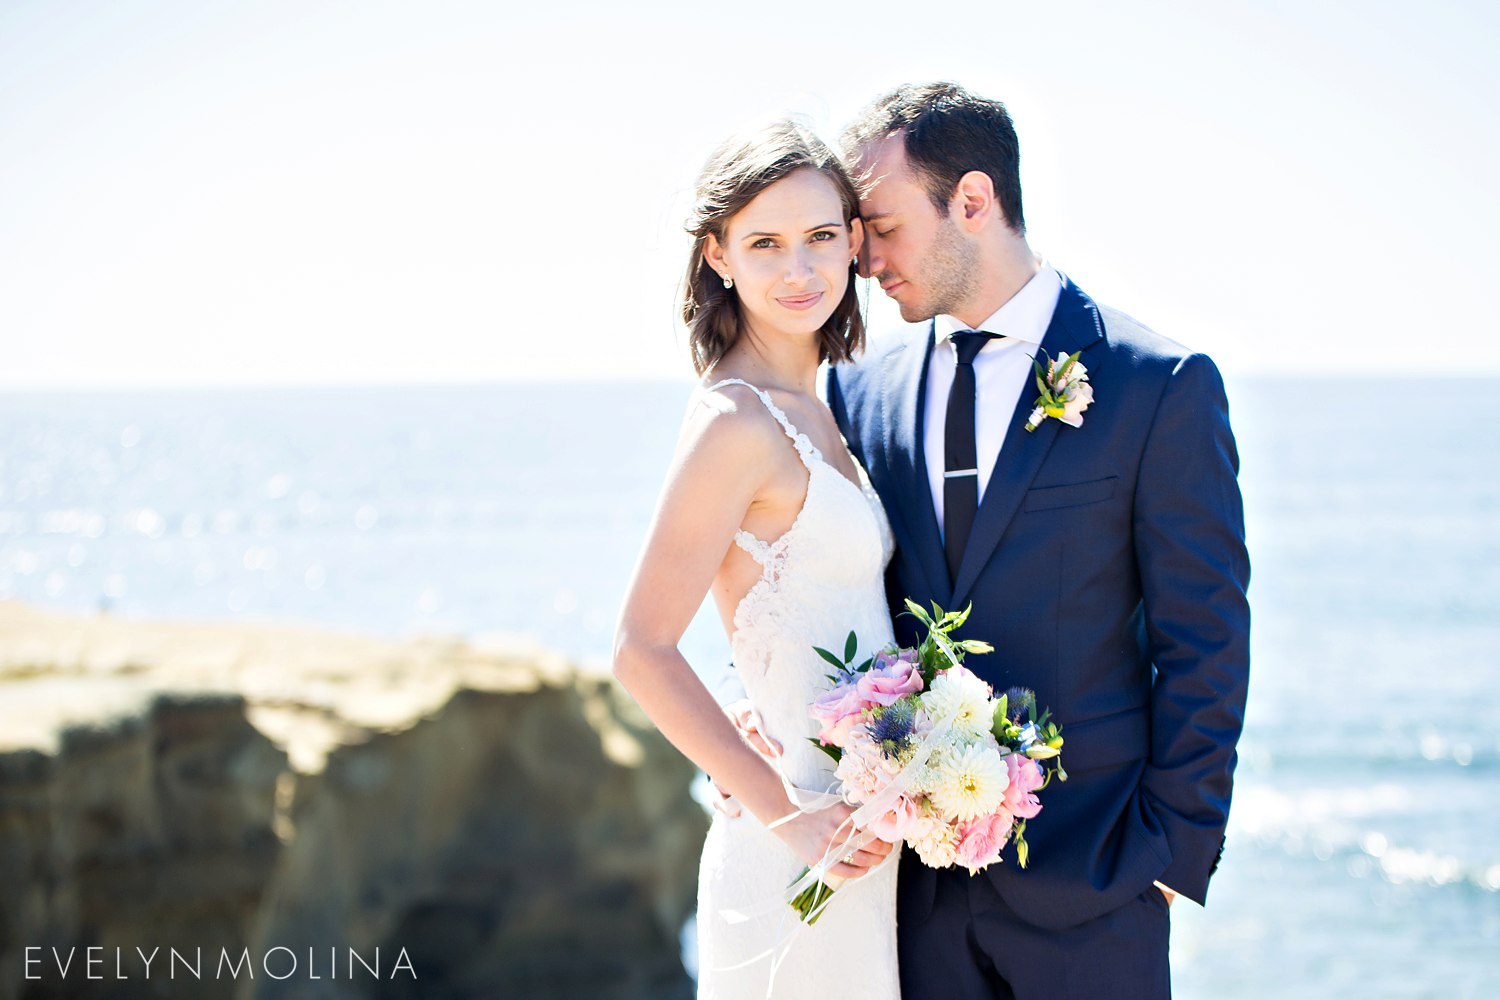 San Diego Wedding_ Becca and Alex_ Evelyn Molina_010.jpg